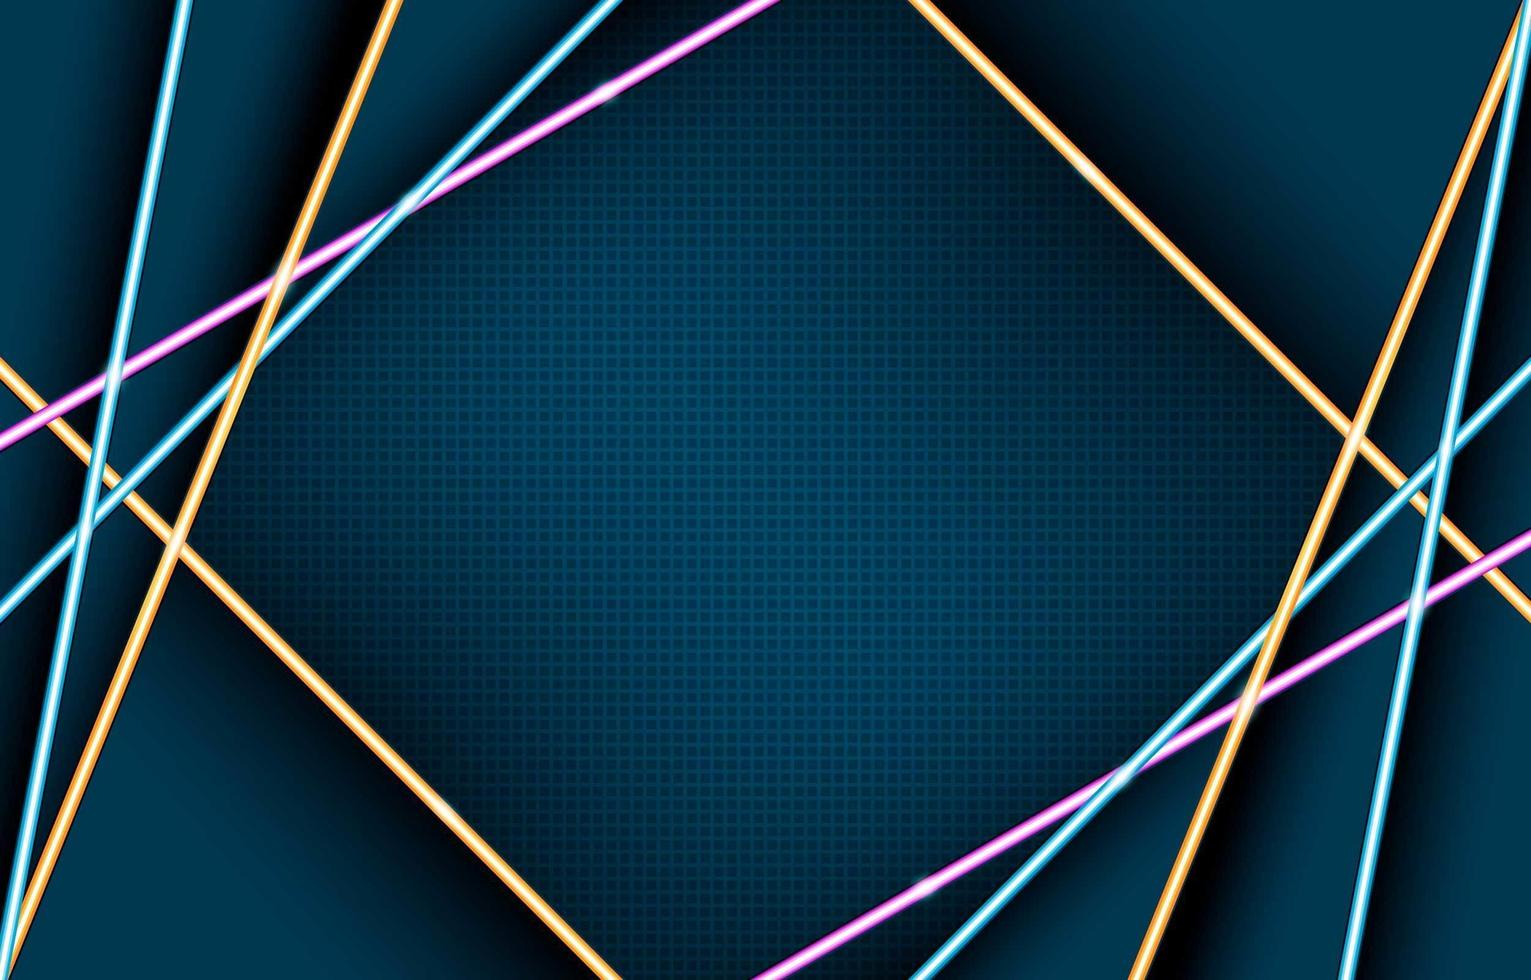 Glowing Geometric Neon Lights Composition vector